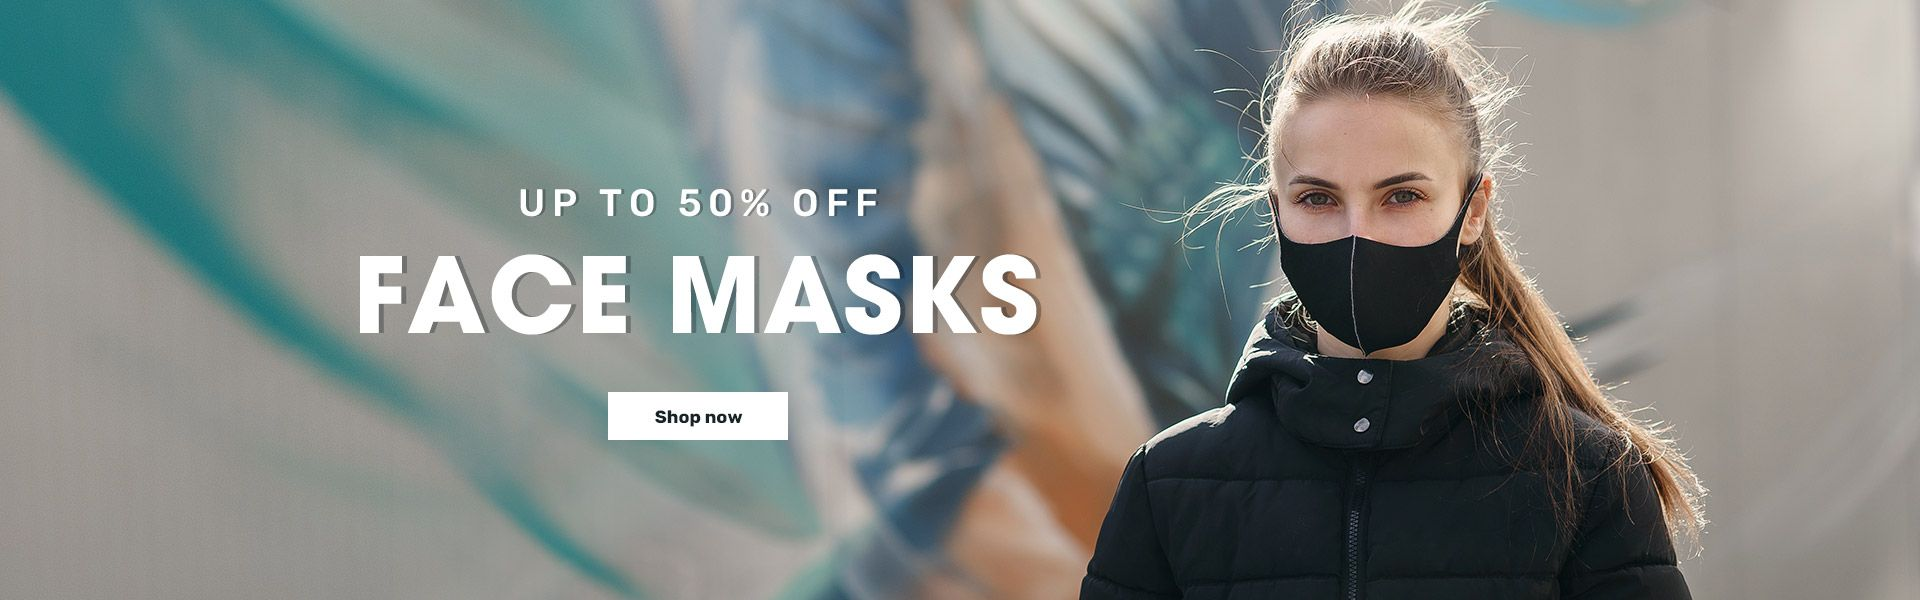 rosegal.com - Avail Upto 65% Discount on Mask